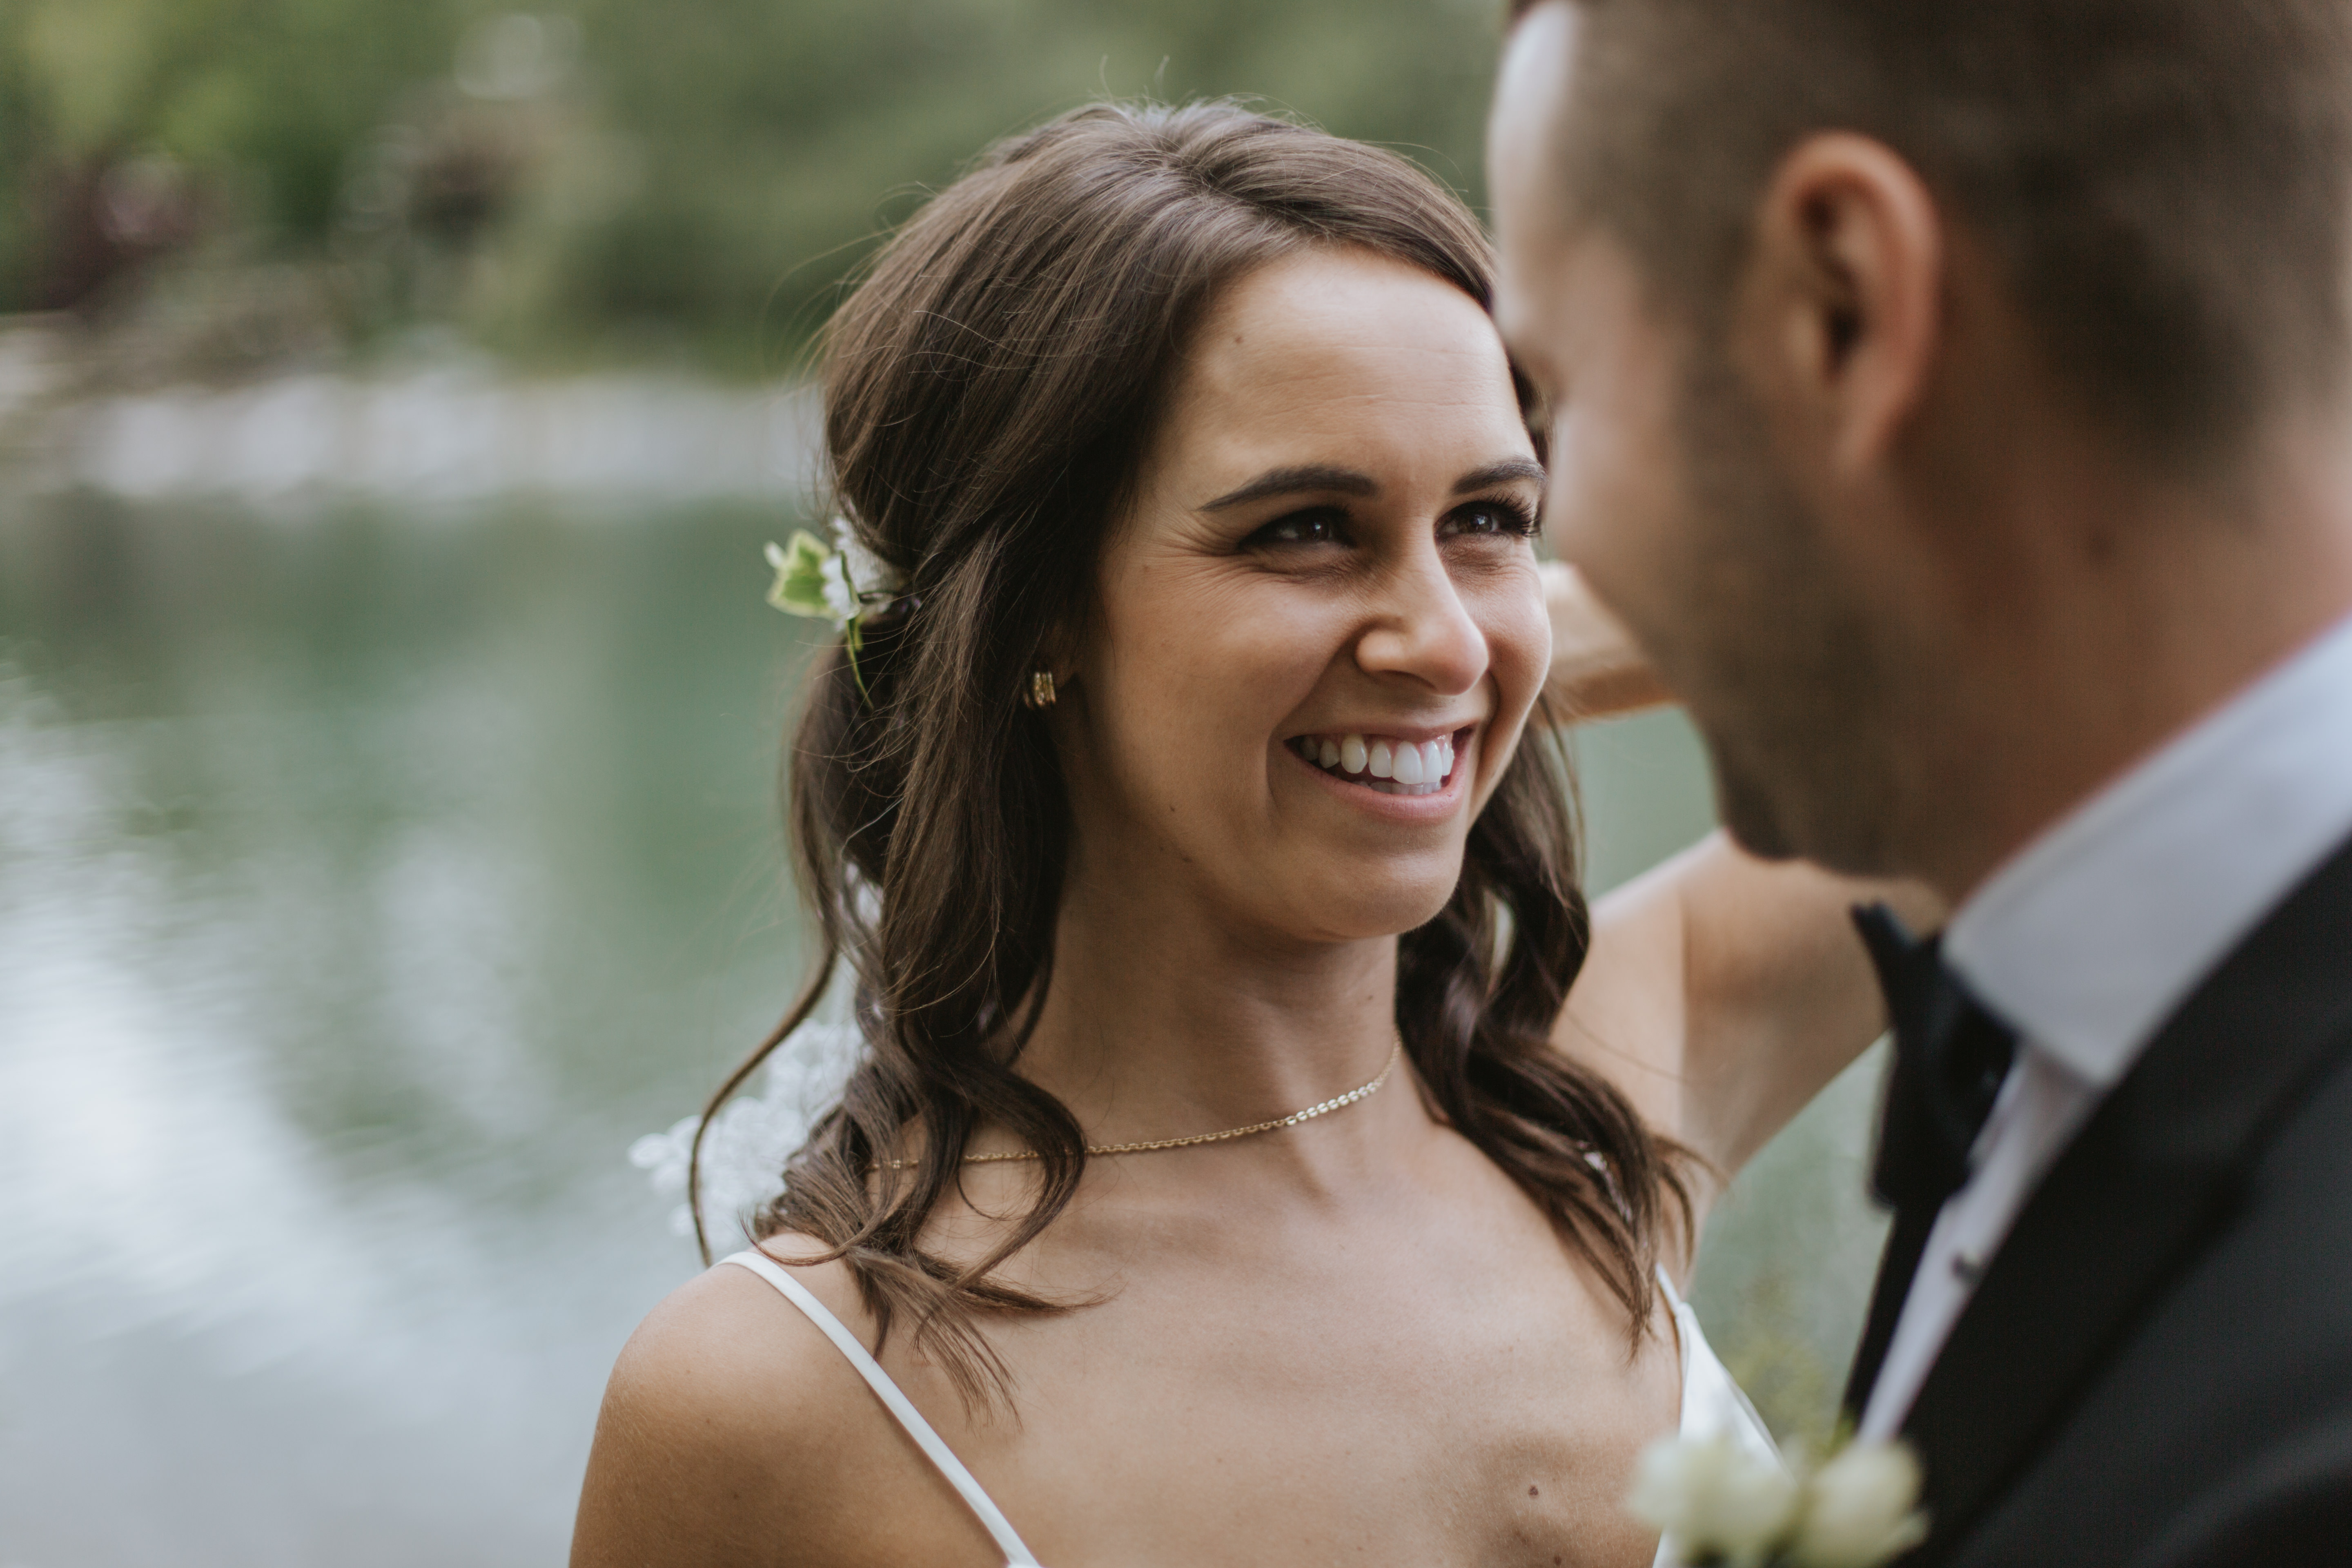 bride smiles at the groom and you can see her delicate necklace